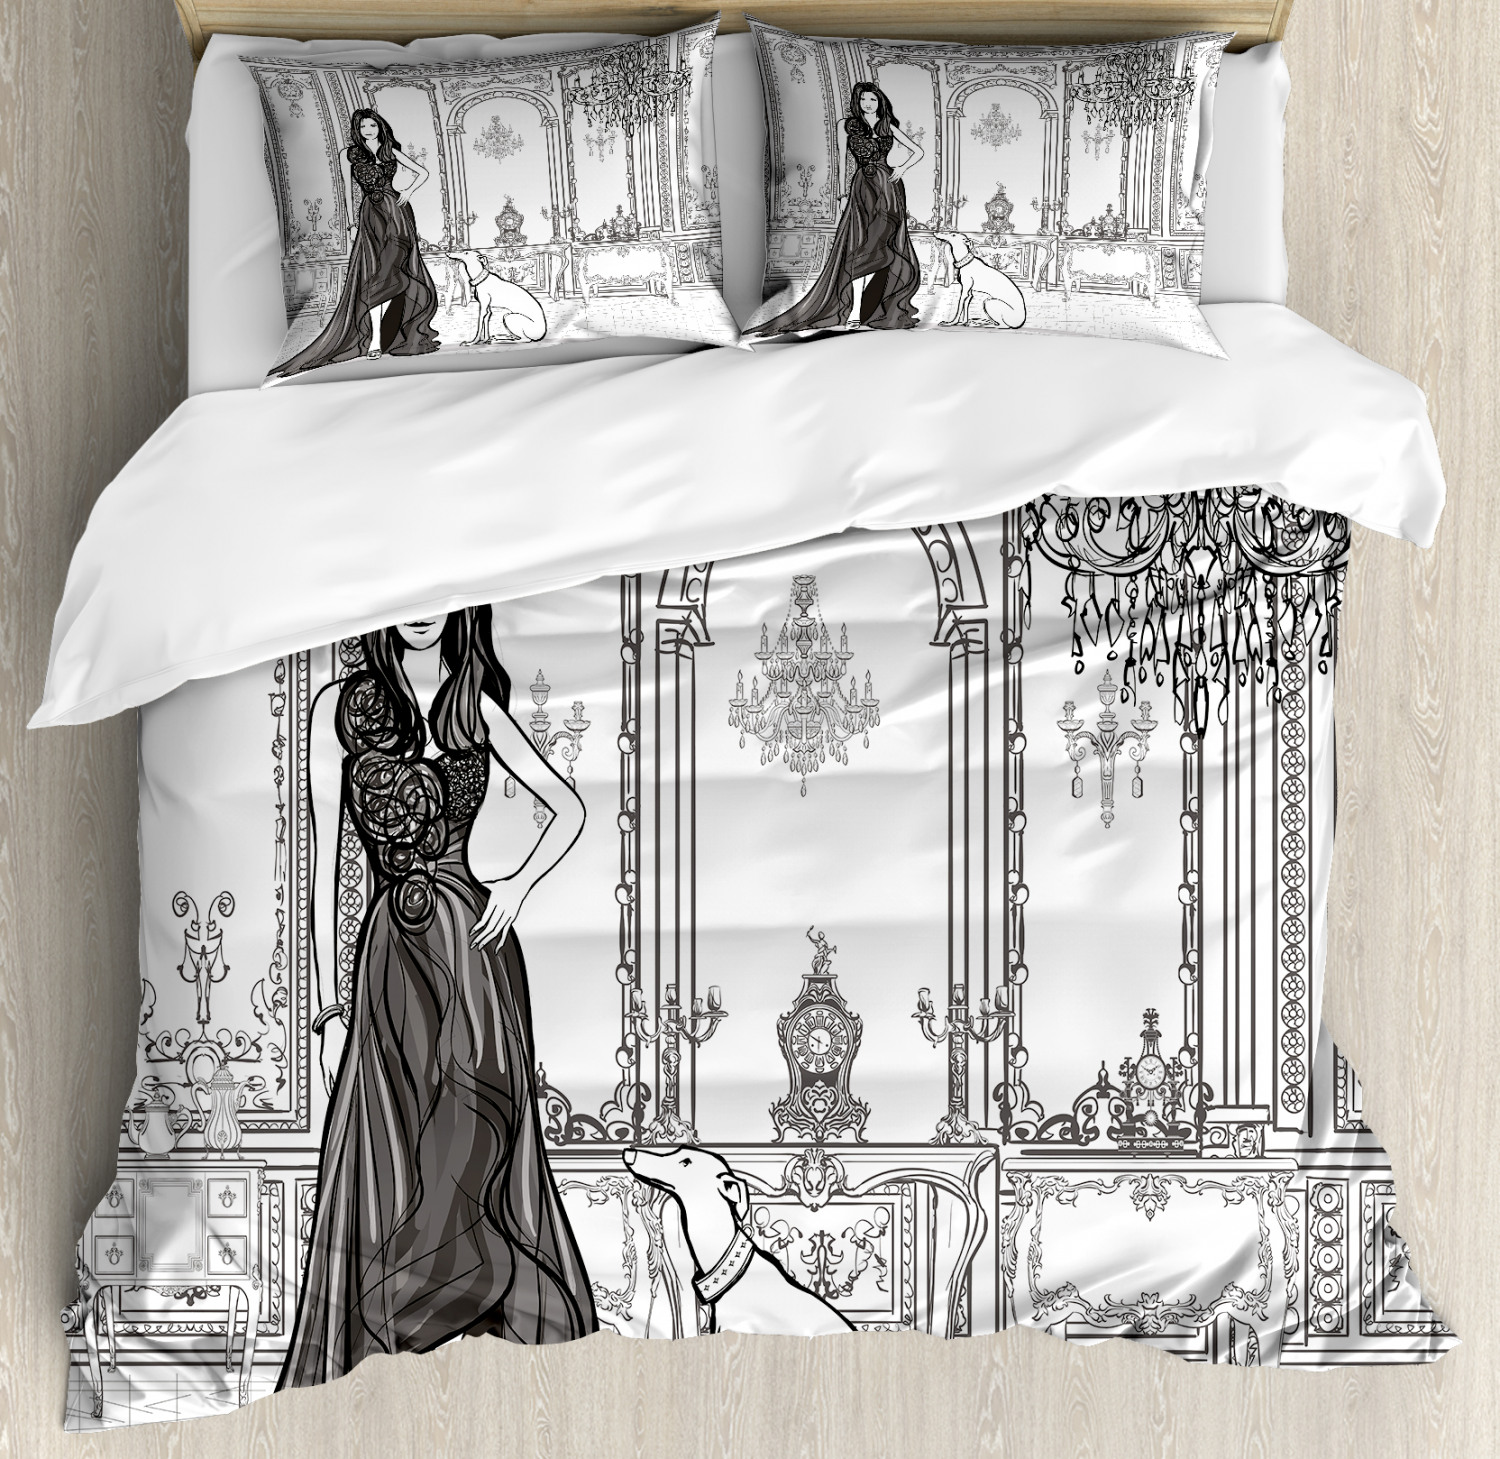 Teen Room Duvet Cover Set with Pillow Shams Sexy Fashion Woman Print